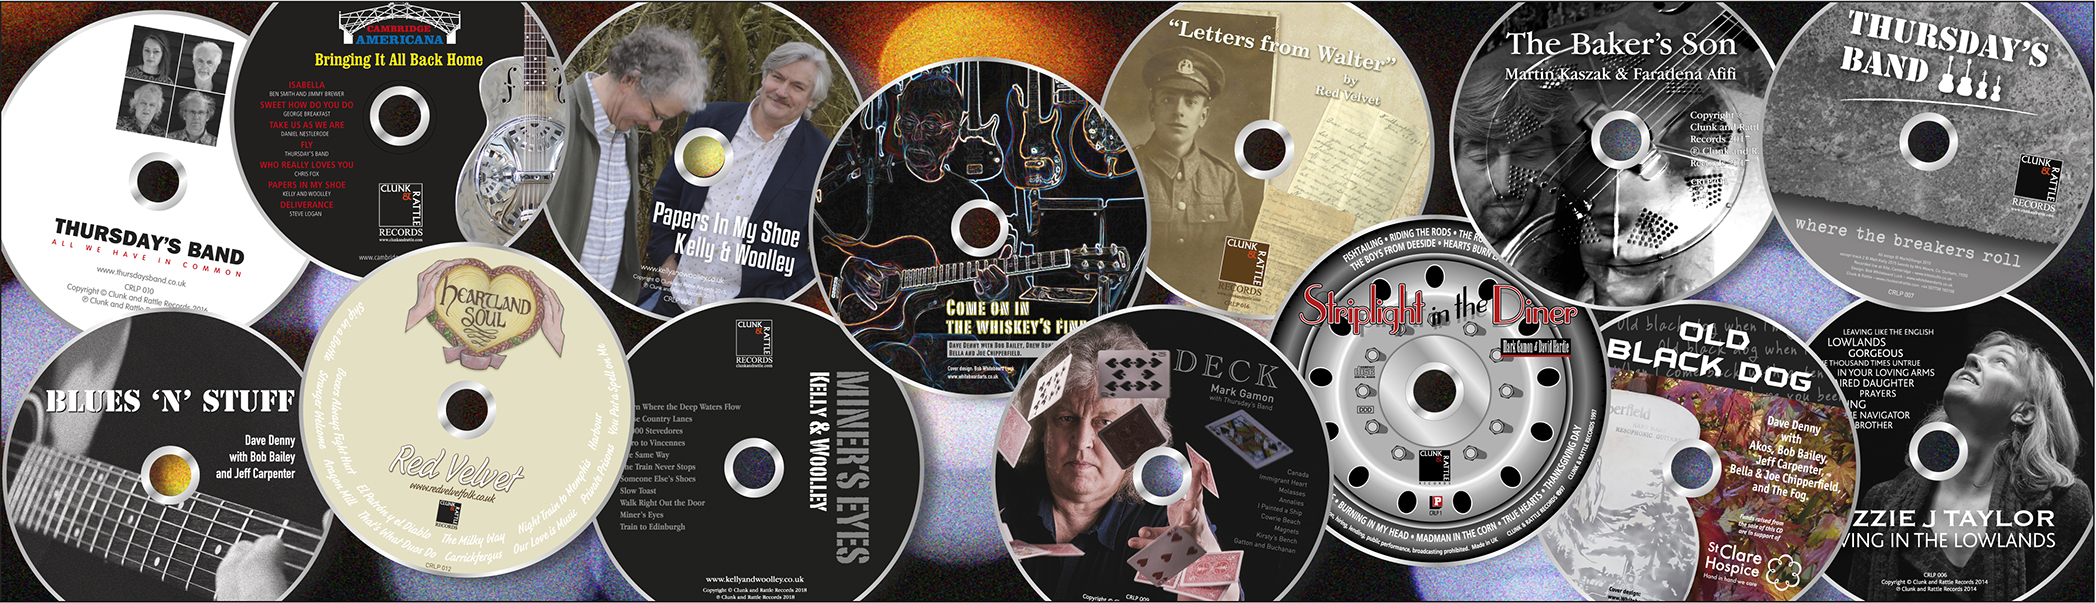 CD Packaging Design